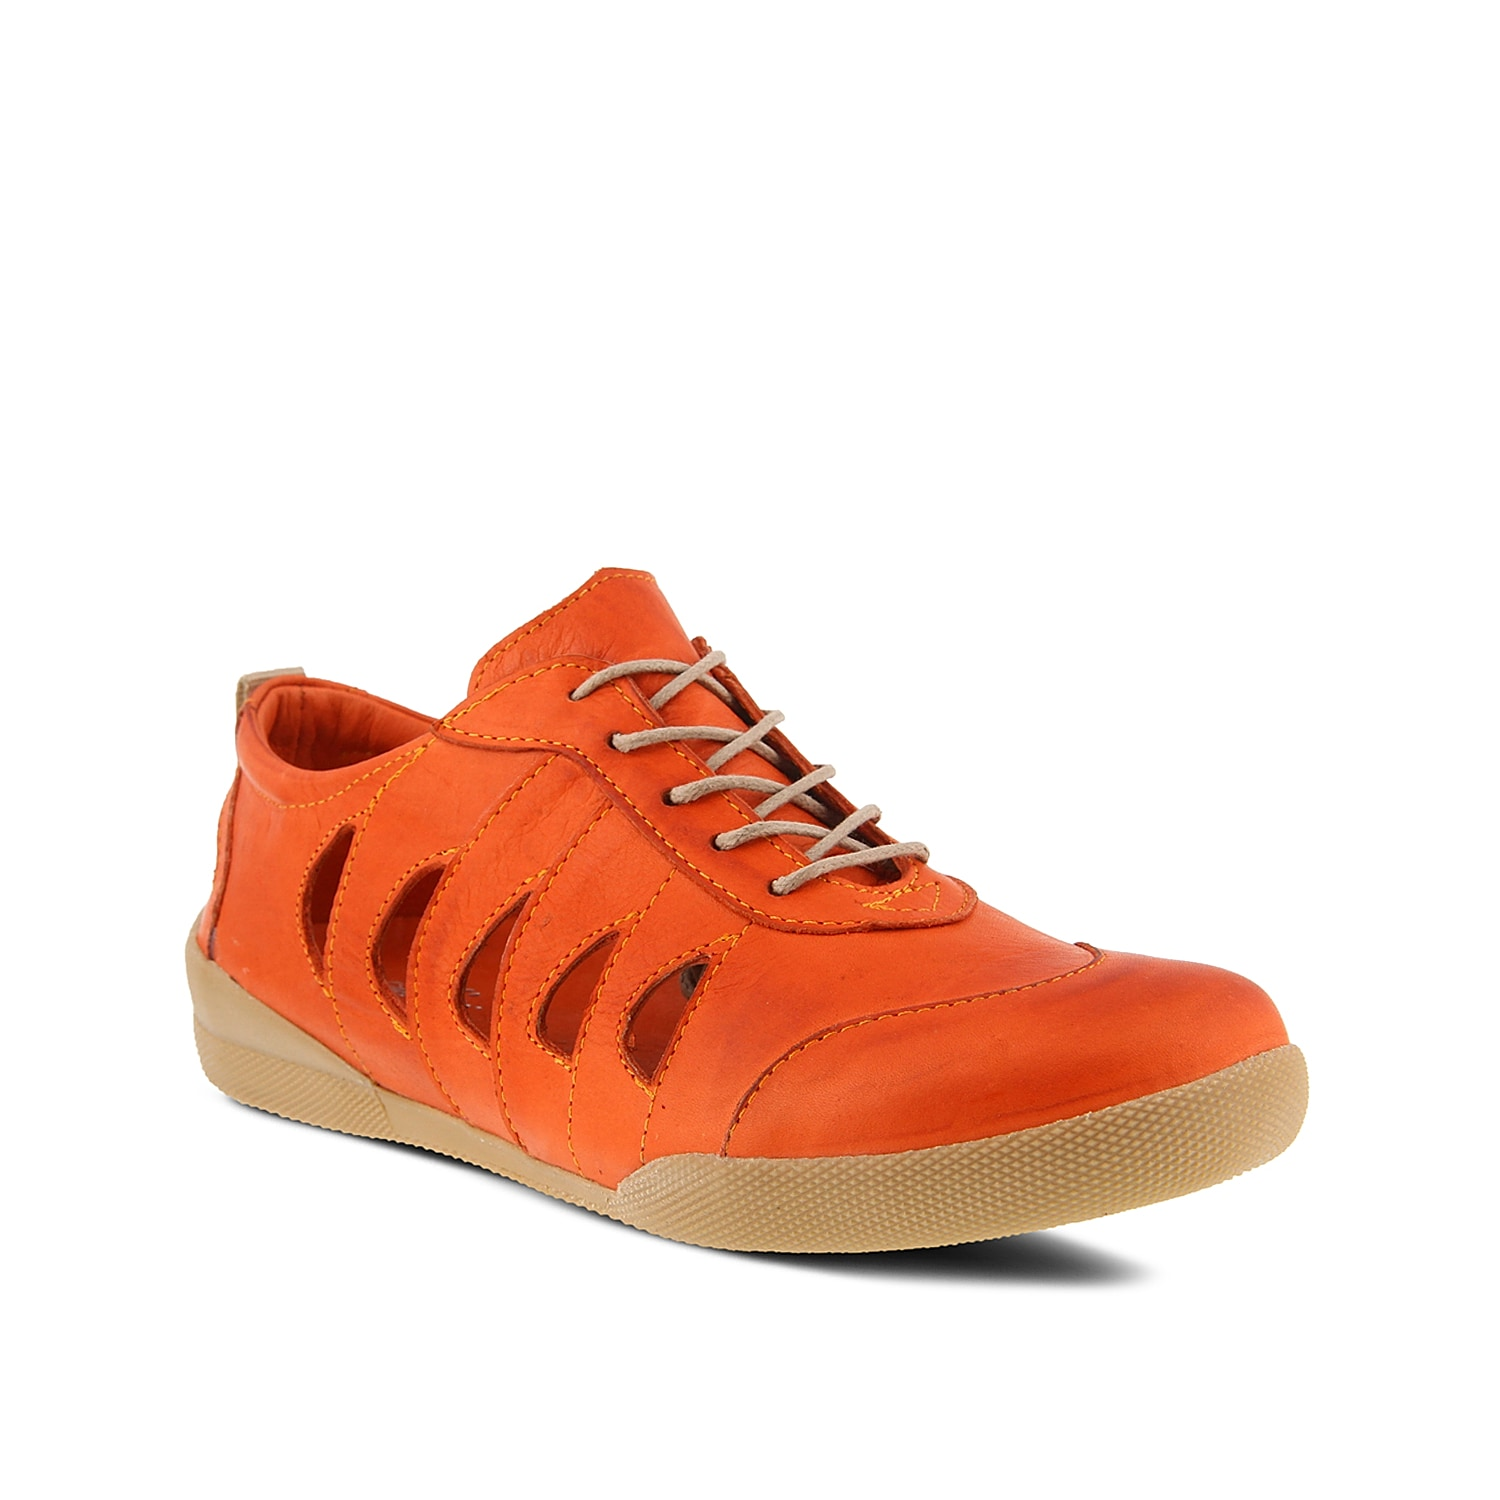 Perfect for the summer season, the Konak sneaker from Spring Step will keep you feeling fresh. Side cut outs and a leather lining keep this low-top extra breathable!